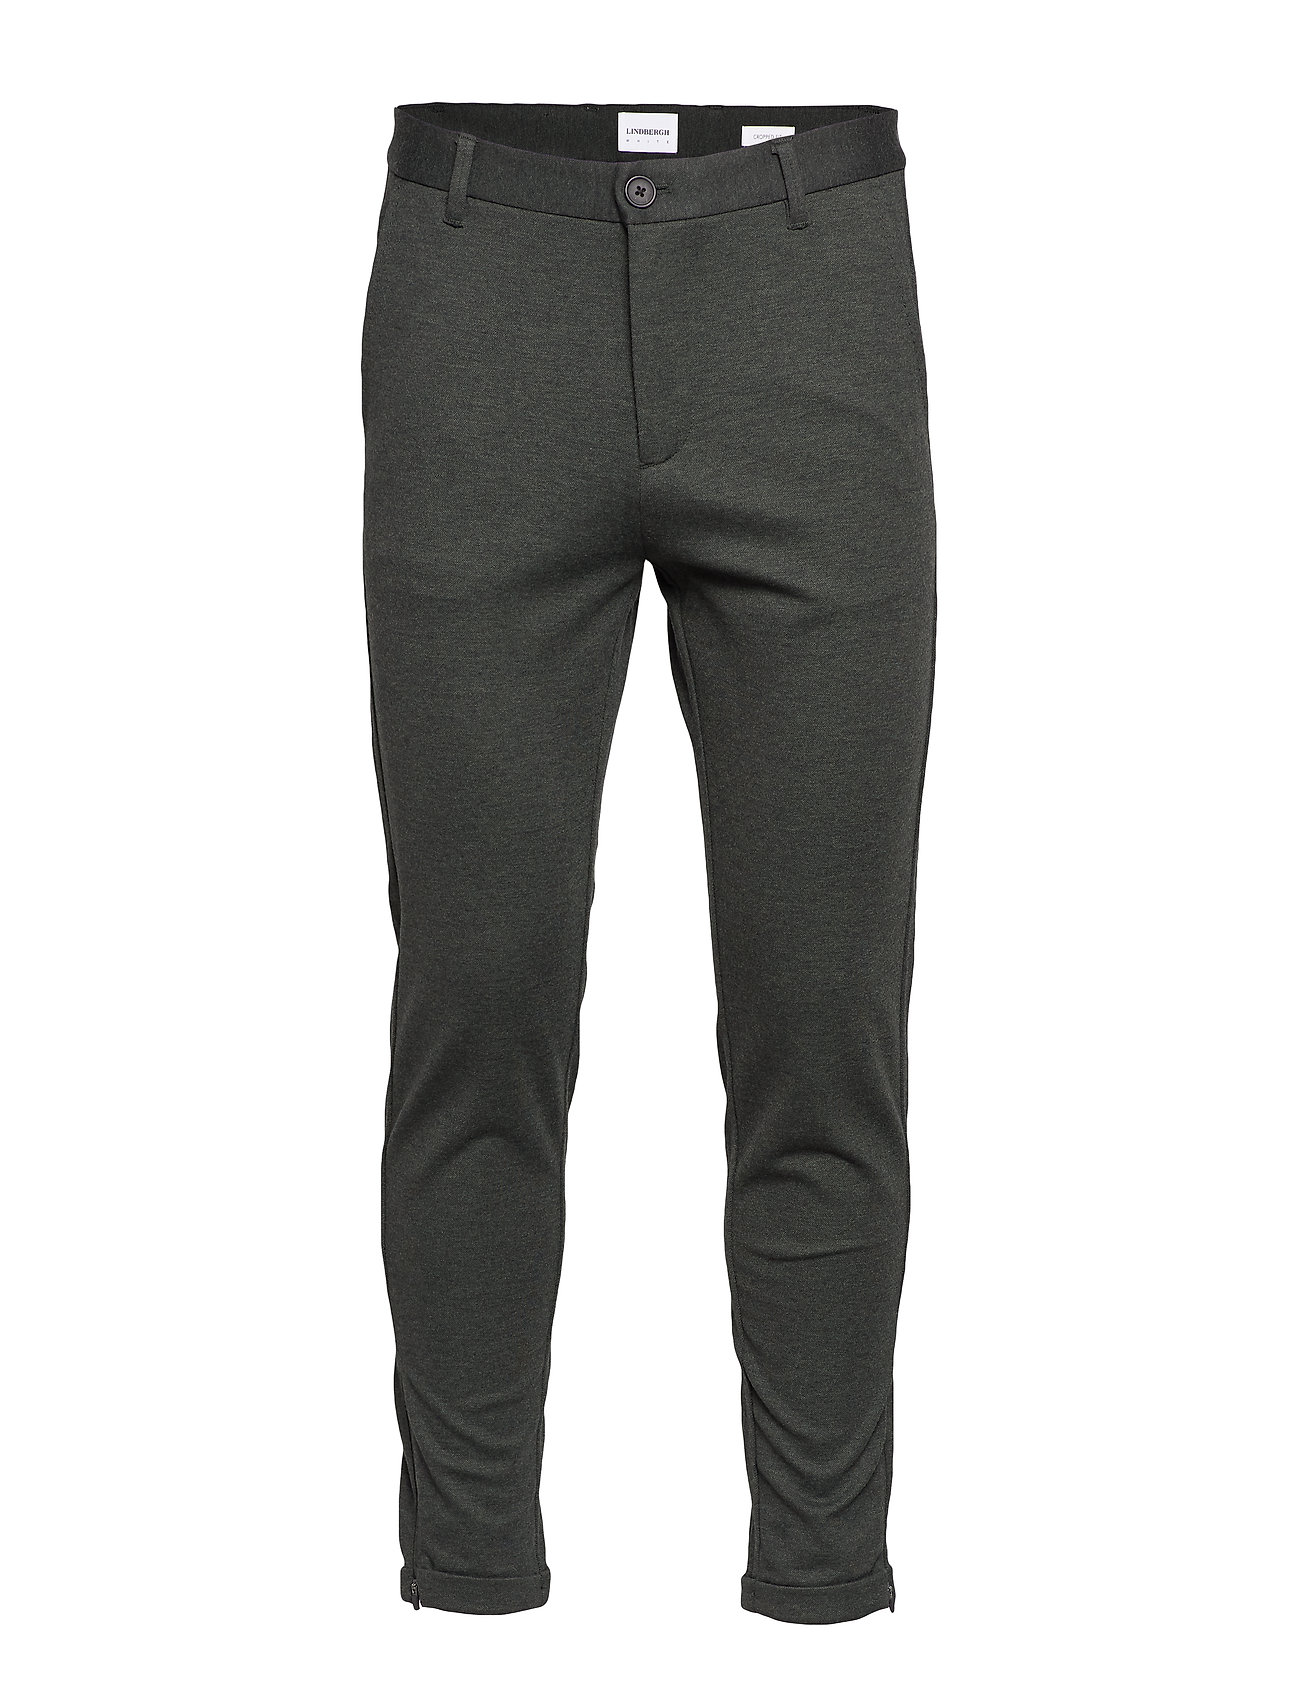 Lindbergh Cropped pants - knitted - ARMY MIX